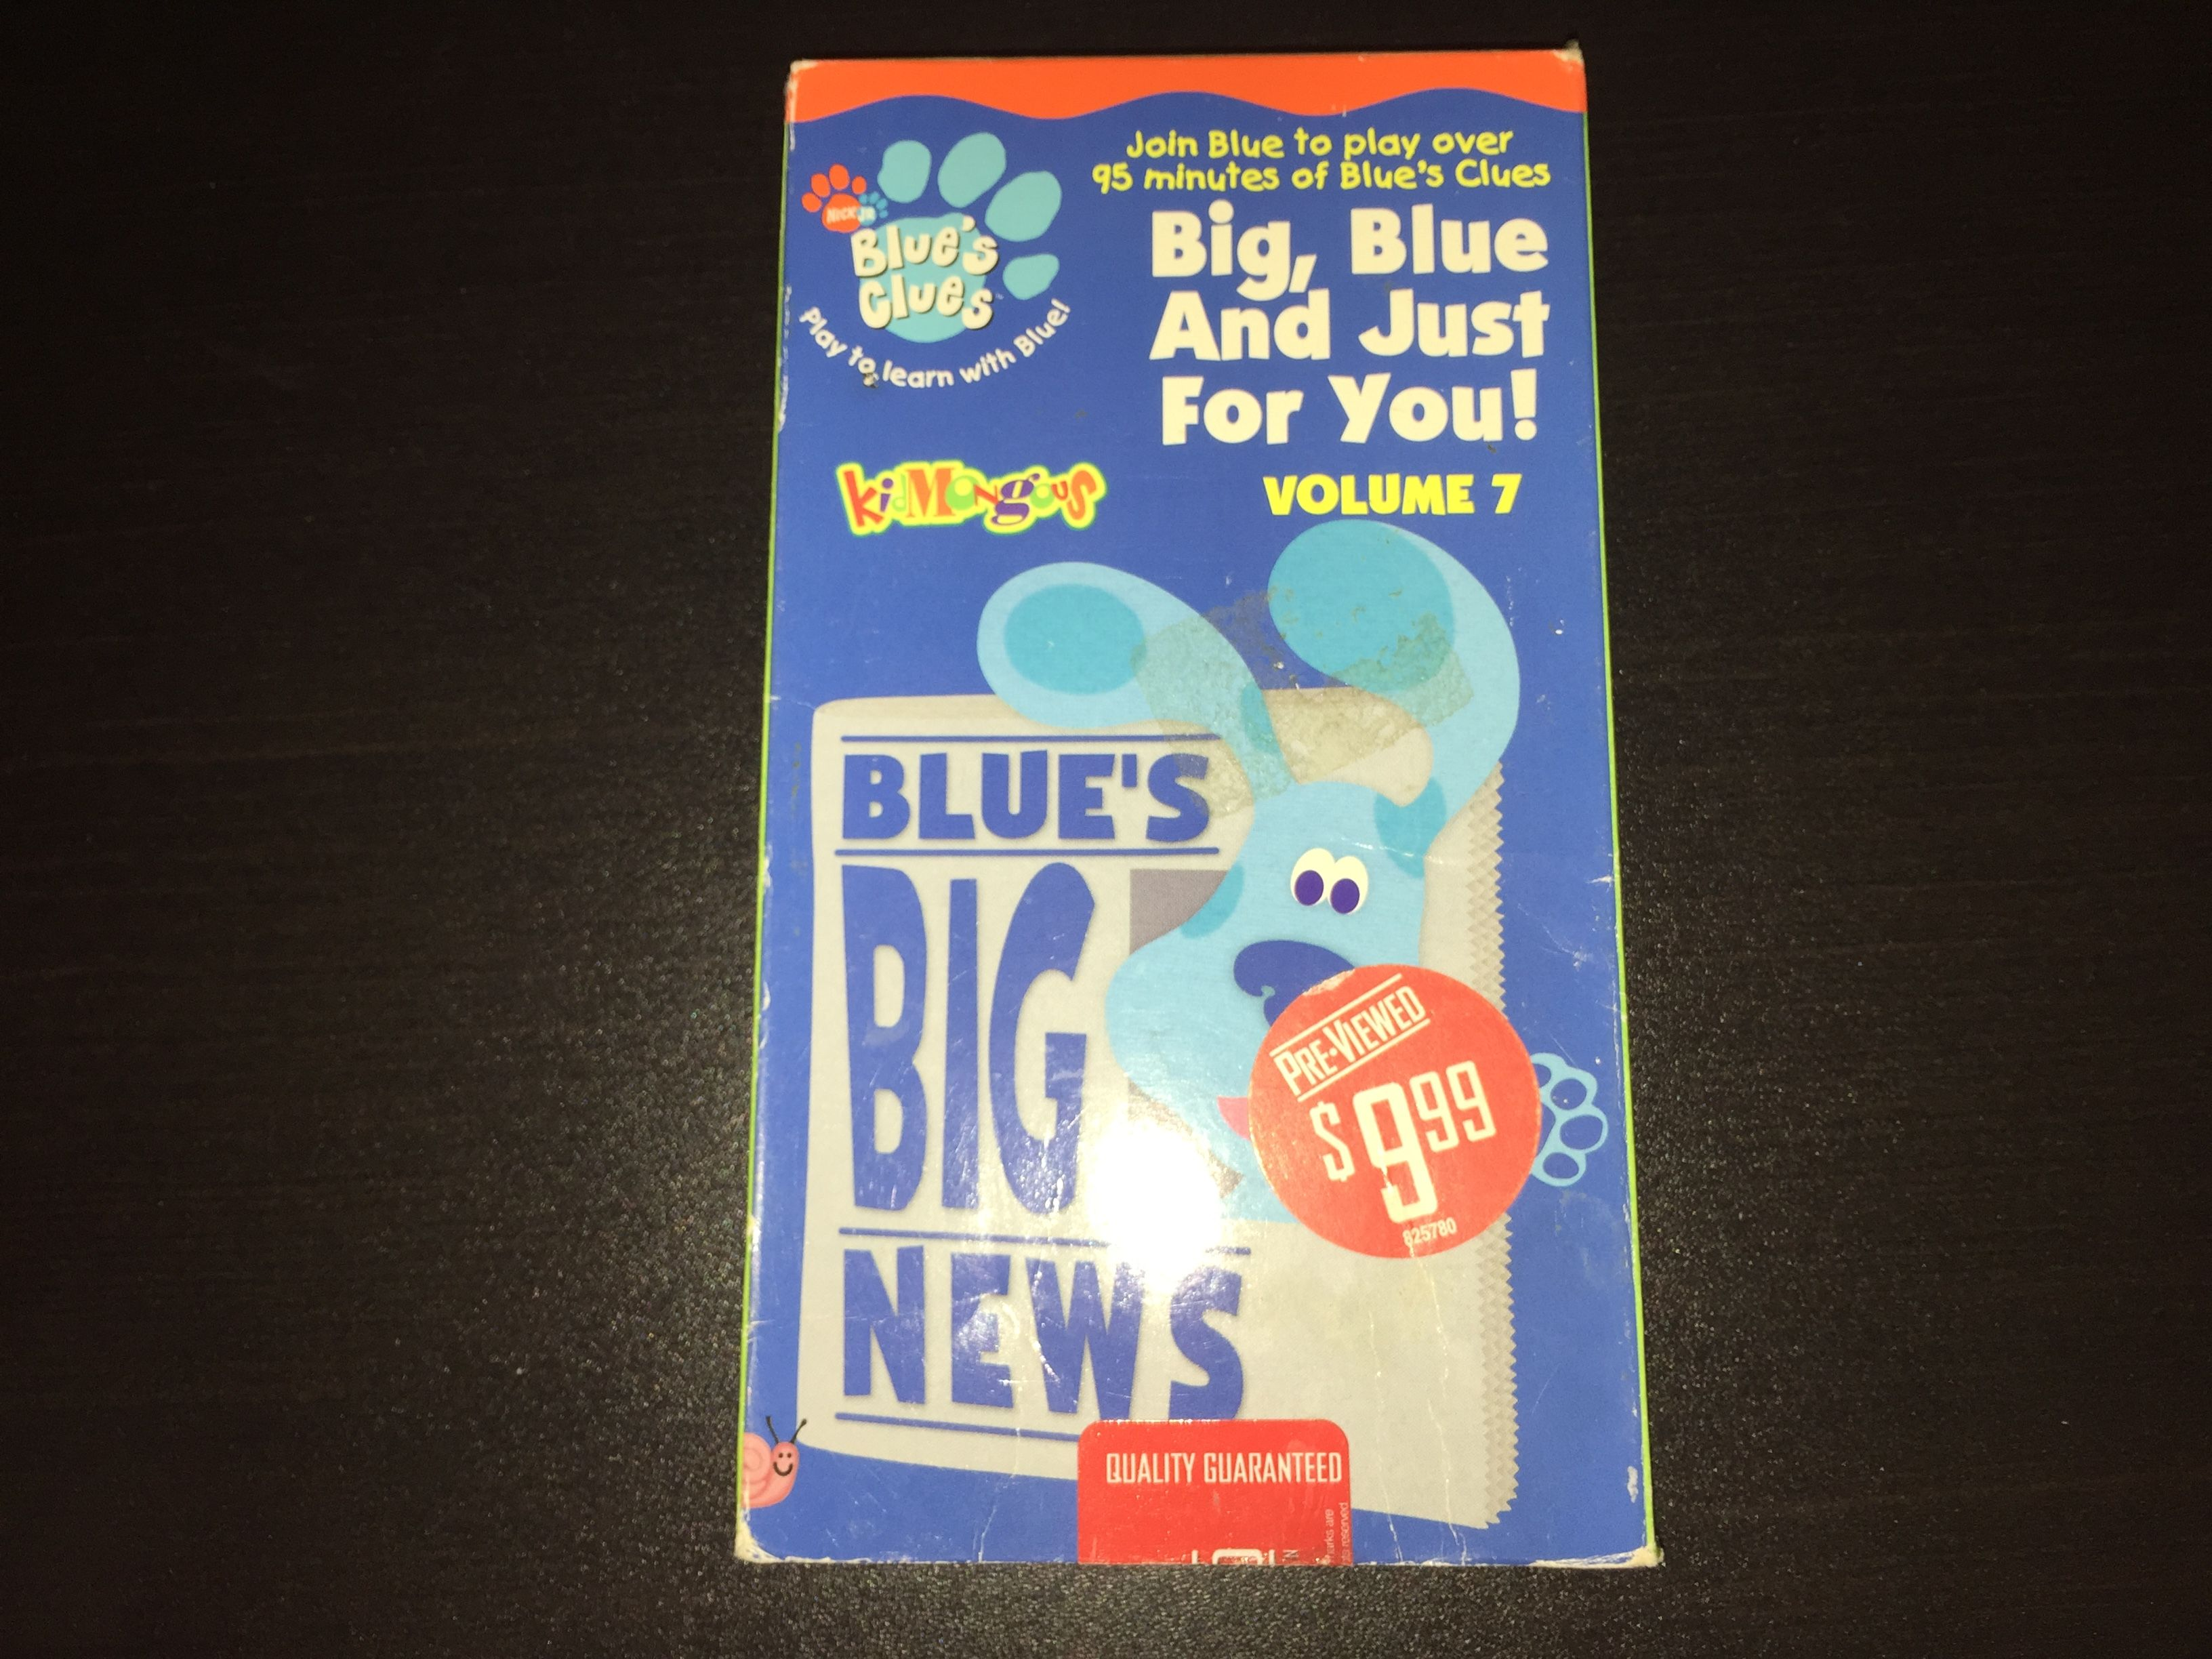 Blue's Clues: Big, Blue and Just for You! Volume 7 (2002 VHS)